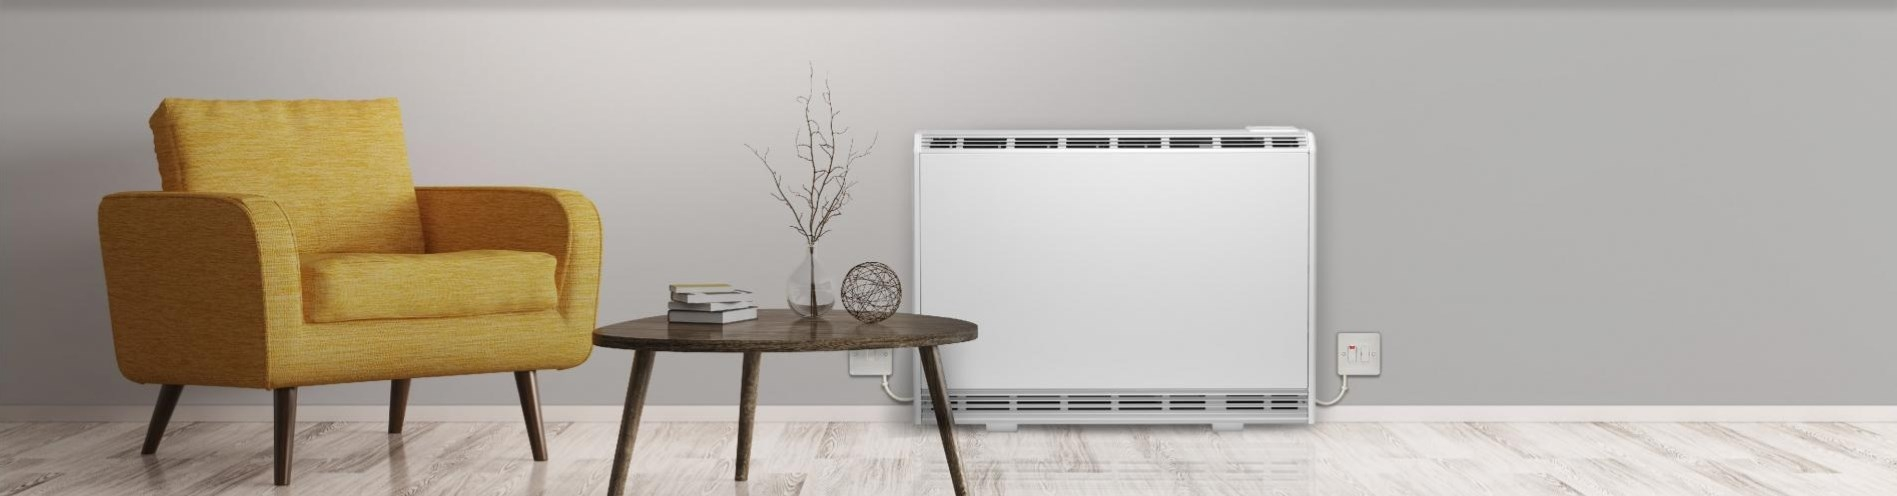 Alert Electrical - Electric Storage Heaters